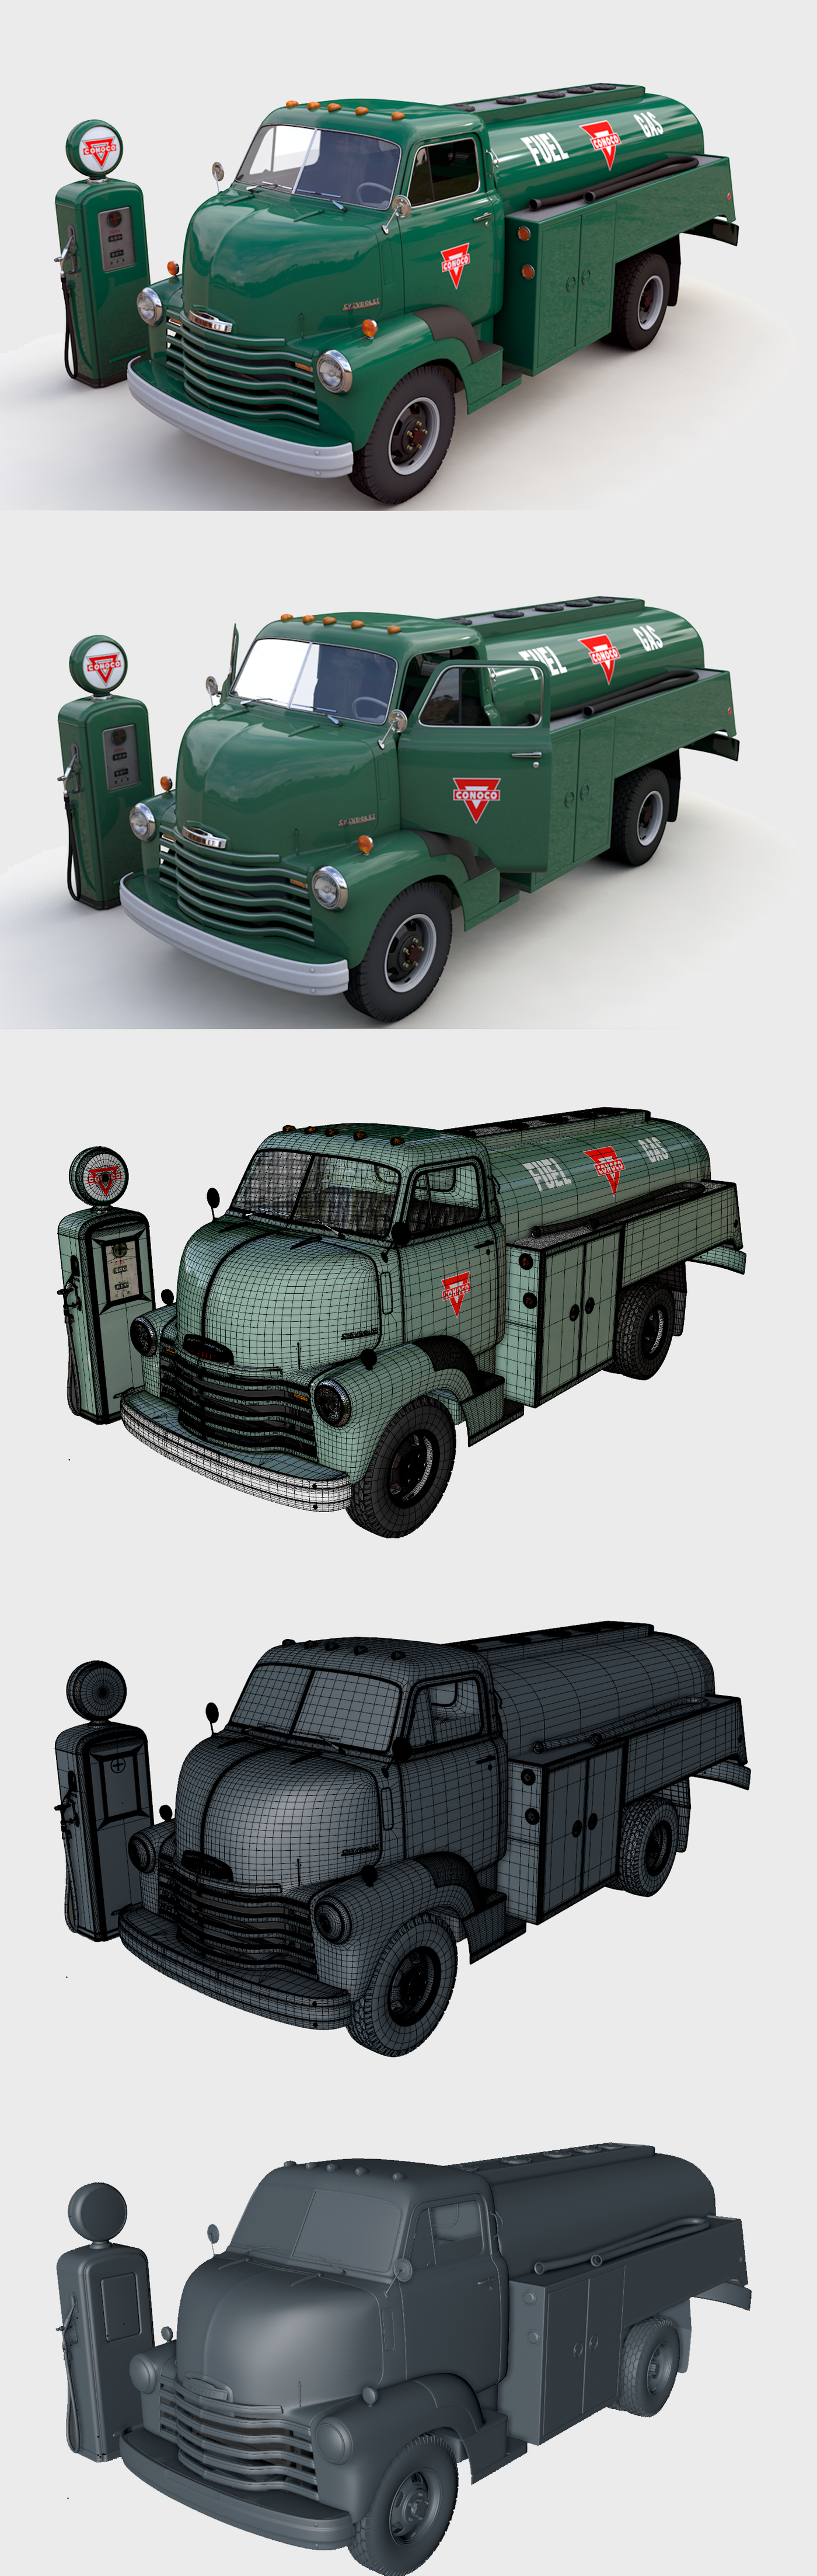 CHEVY 6400 FUEL TRUCK 1949